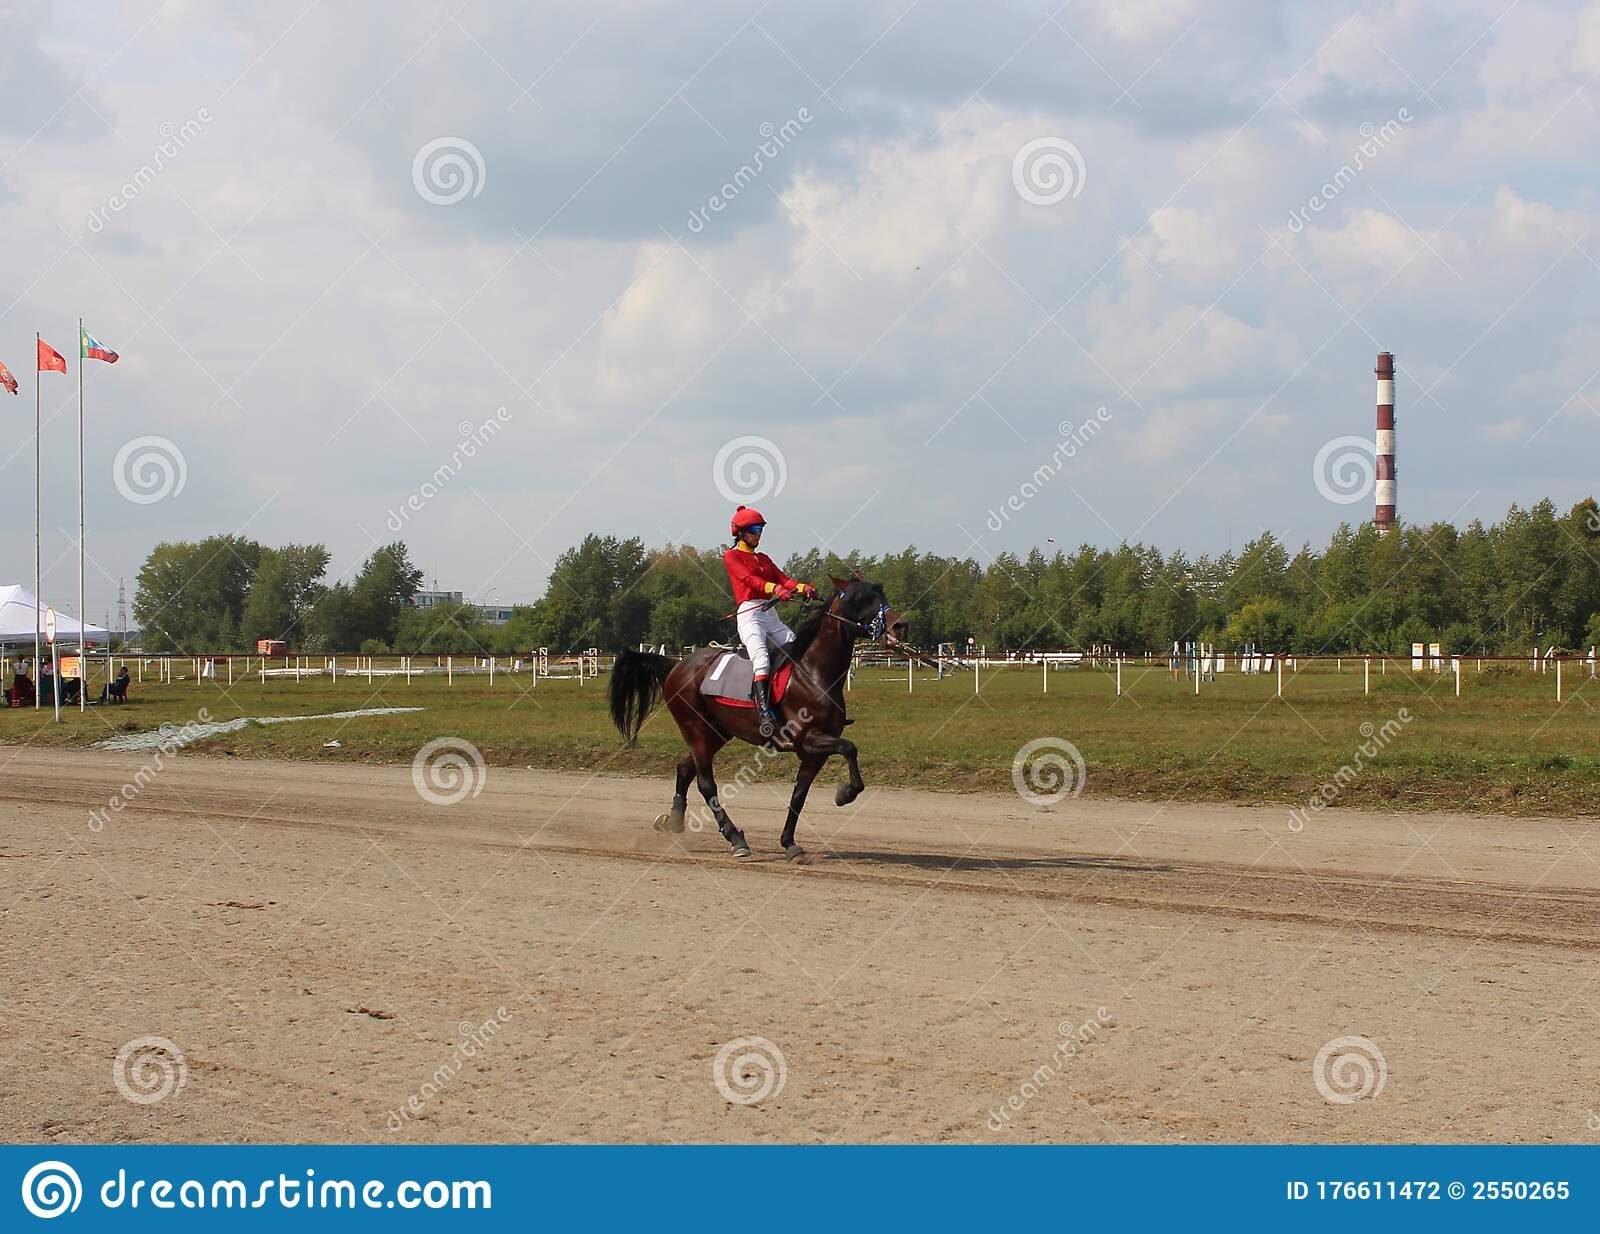 Rider Jockey Riding A Horse Jumps At Competitions Editorial Photography Image Of Competition Equine 176611472